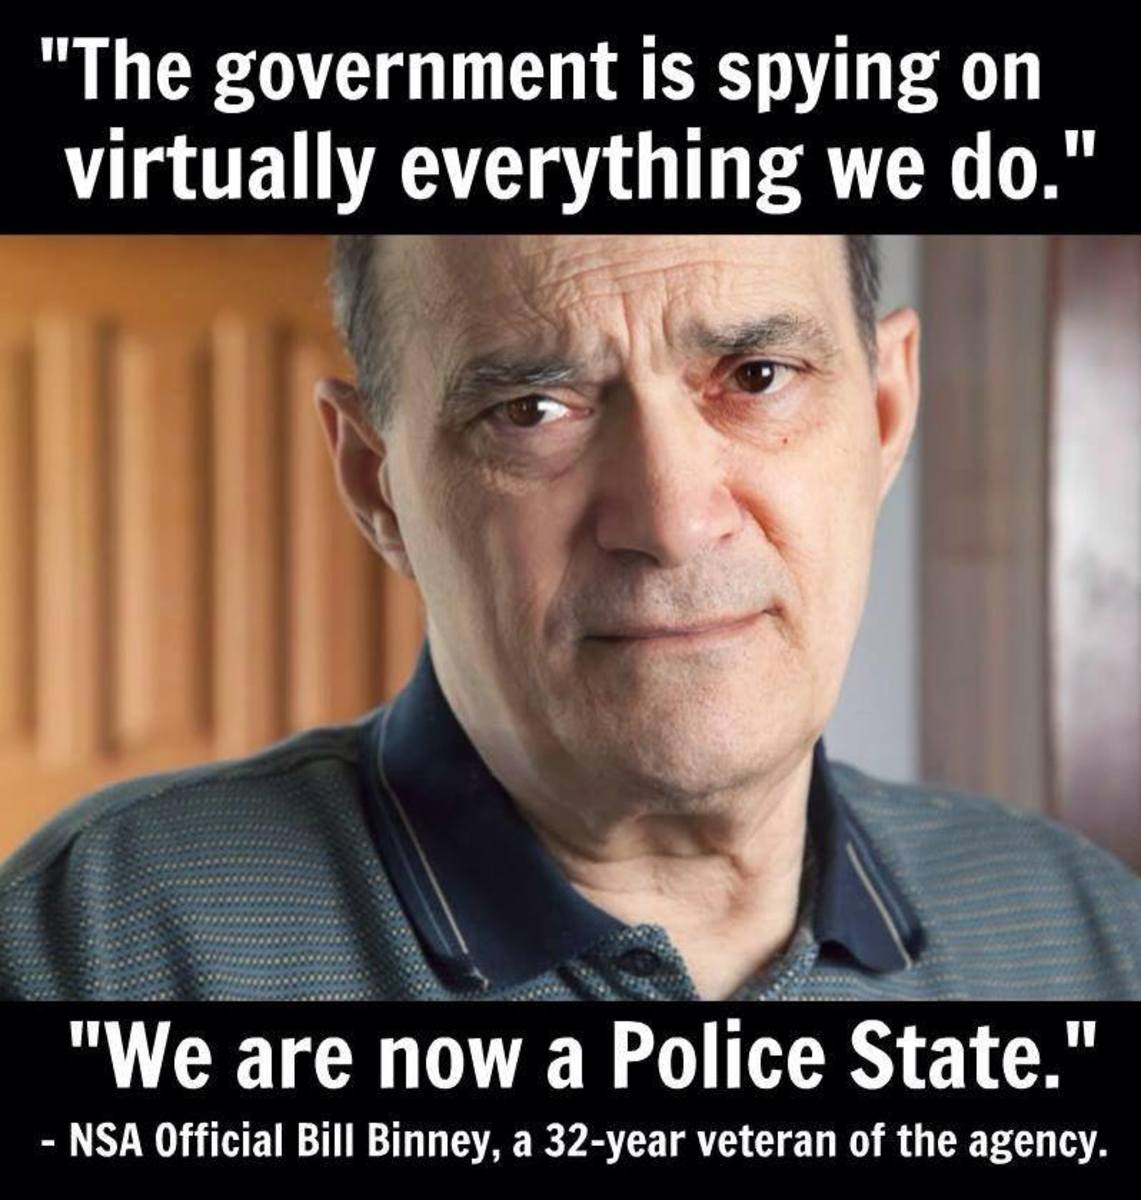 Binney graduated college in 1970 and later signed on with the NSA. He resigned Halloween, 2001. So, he actually worked 31 years and max. 5 months. NOT 32 years. So, what gives?